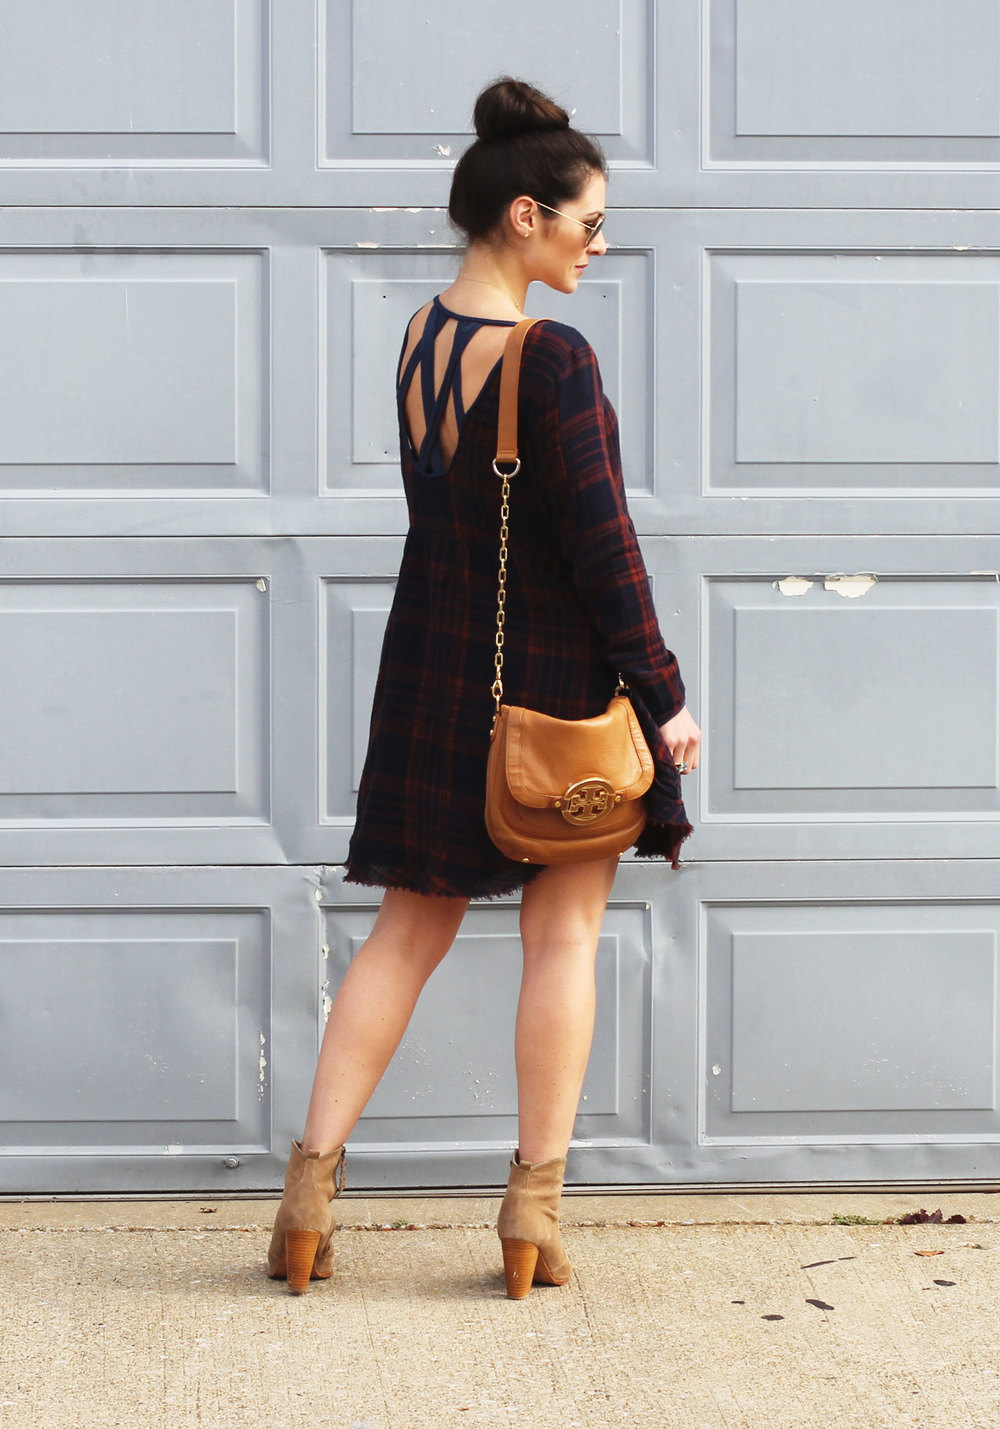 Fall Fashion, Altar'd State Plaid Dress, Joie Dalton Booties, Tory Burch Crossbody, and Ray-Ban Aviator Sunglasses, Casual Fall Style